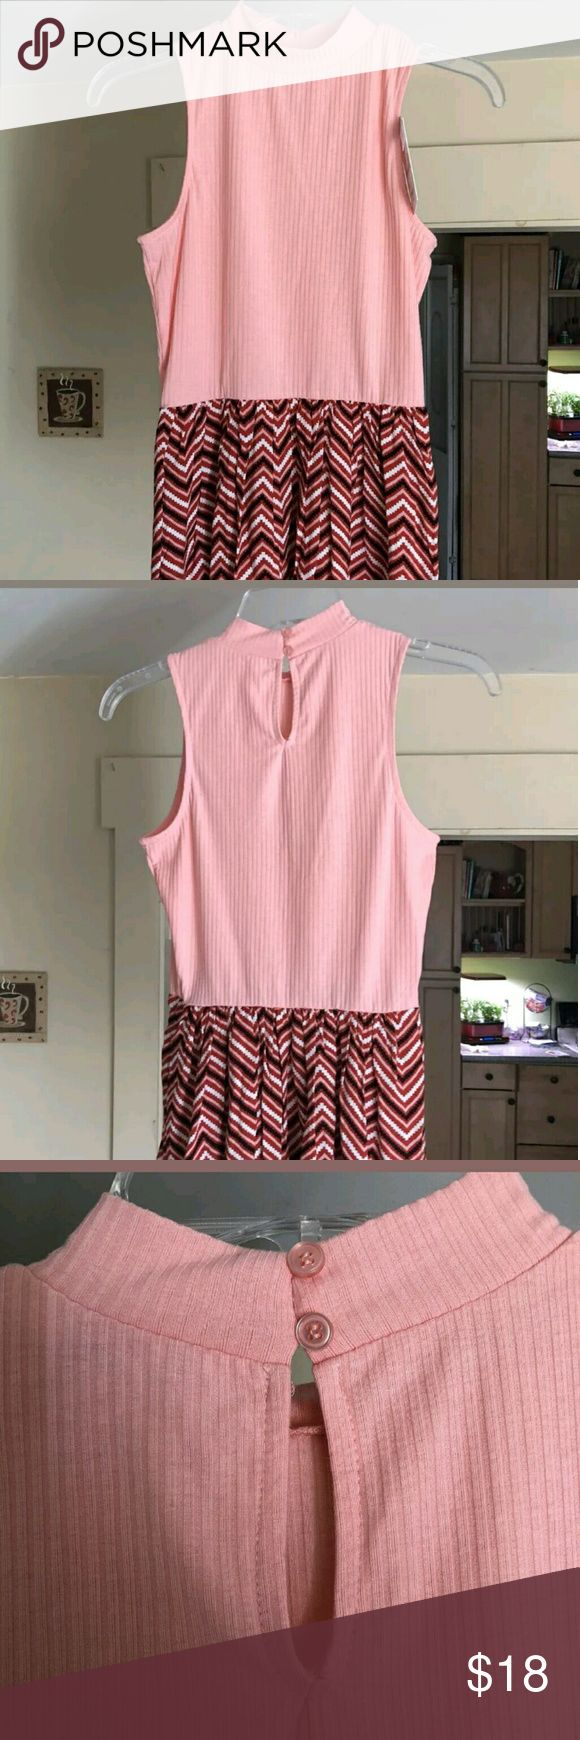 """Tank top chevron blouse NWT 23"""" (front) length from neck line. 26"""" (backside) length from neck line. 15"""" armpit to armpit. NWT smoke amd pet free home. Candie's Dresses"""